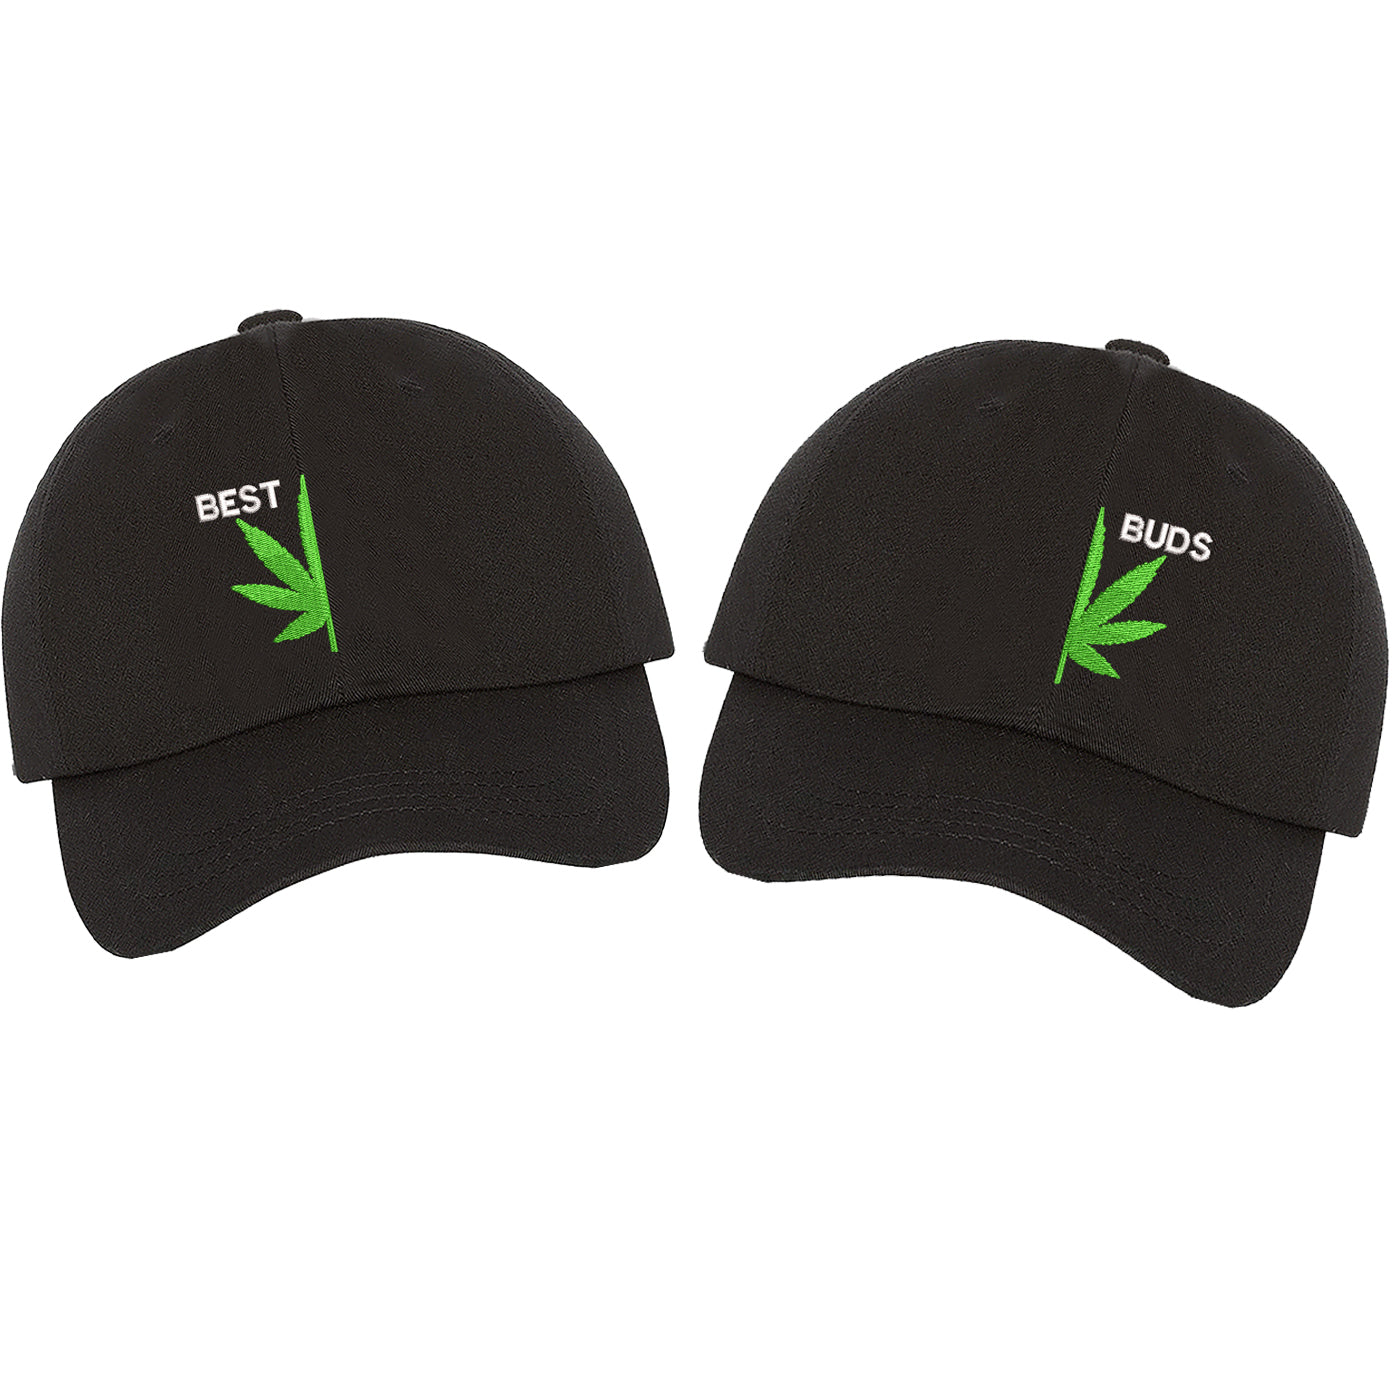 Best Buds Set Black hats - DSY Lifestyle